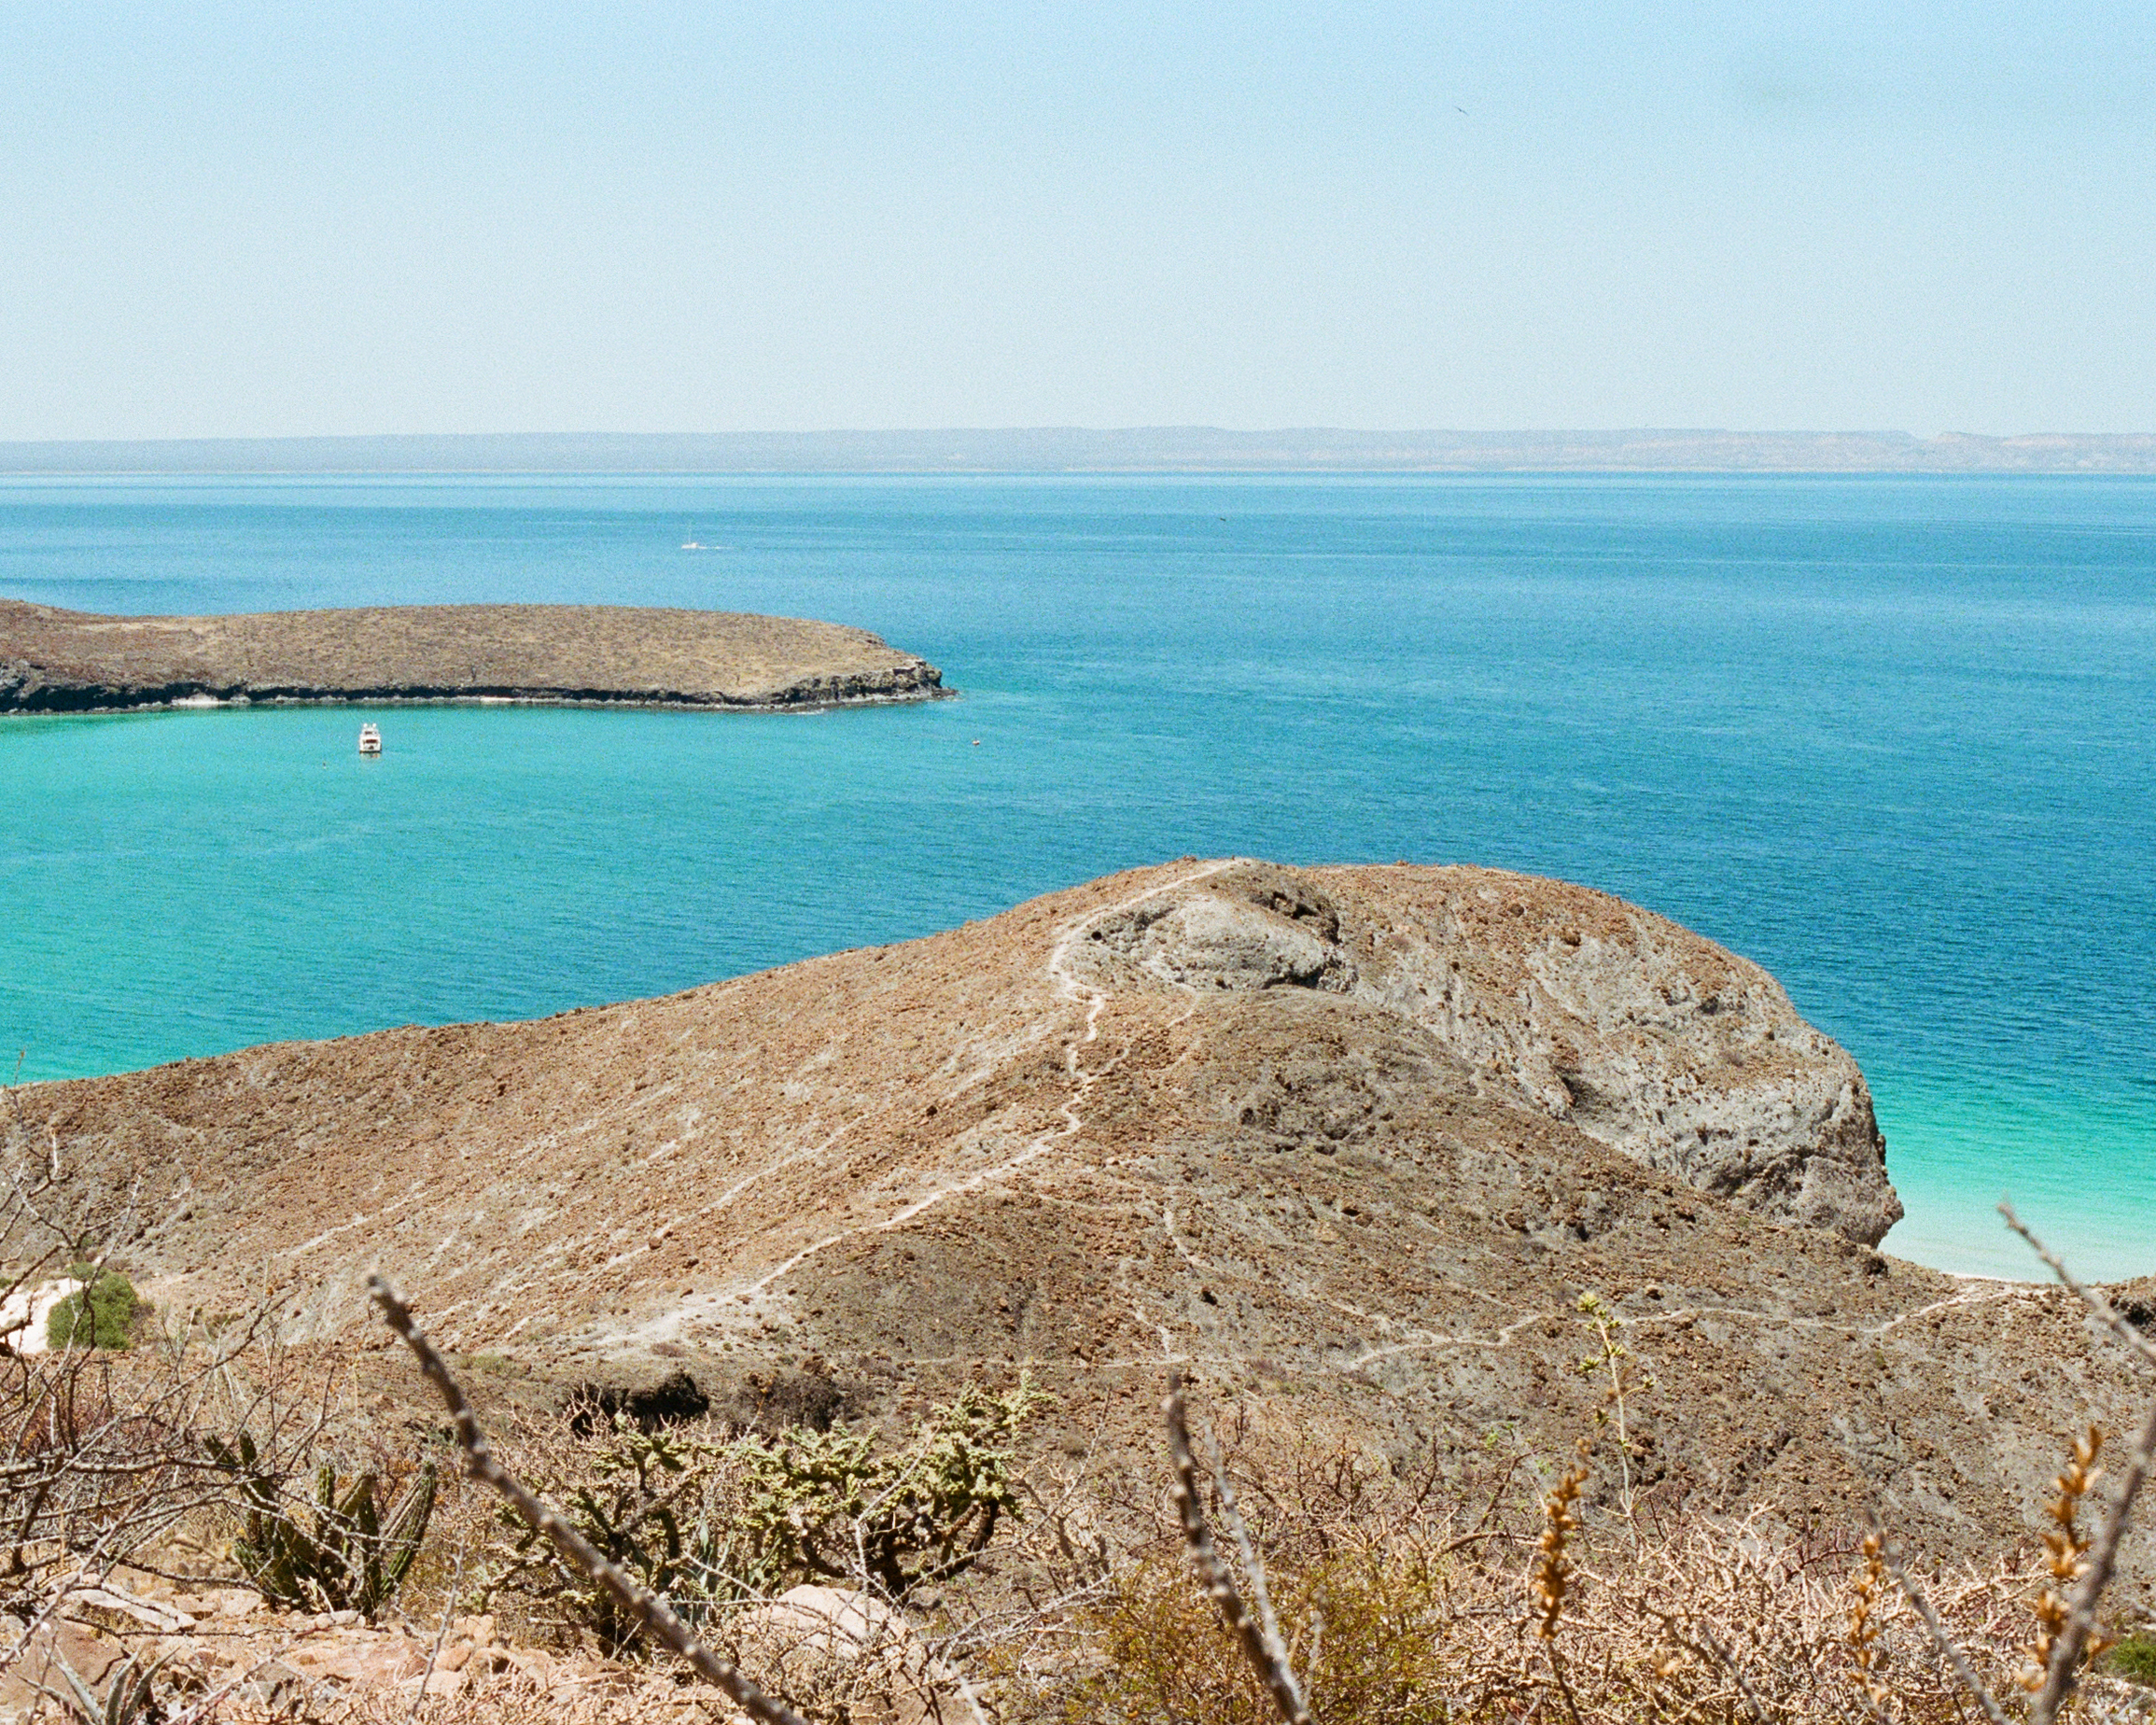 Photograph from Baja Mexico by photographer Jon Moore, Creative Director at The Beans and Rice